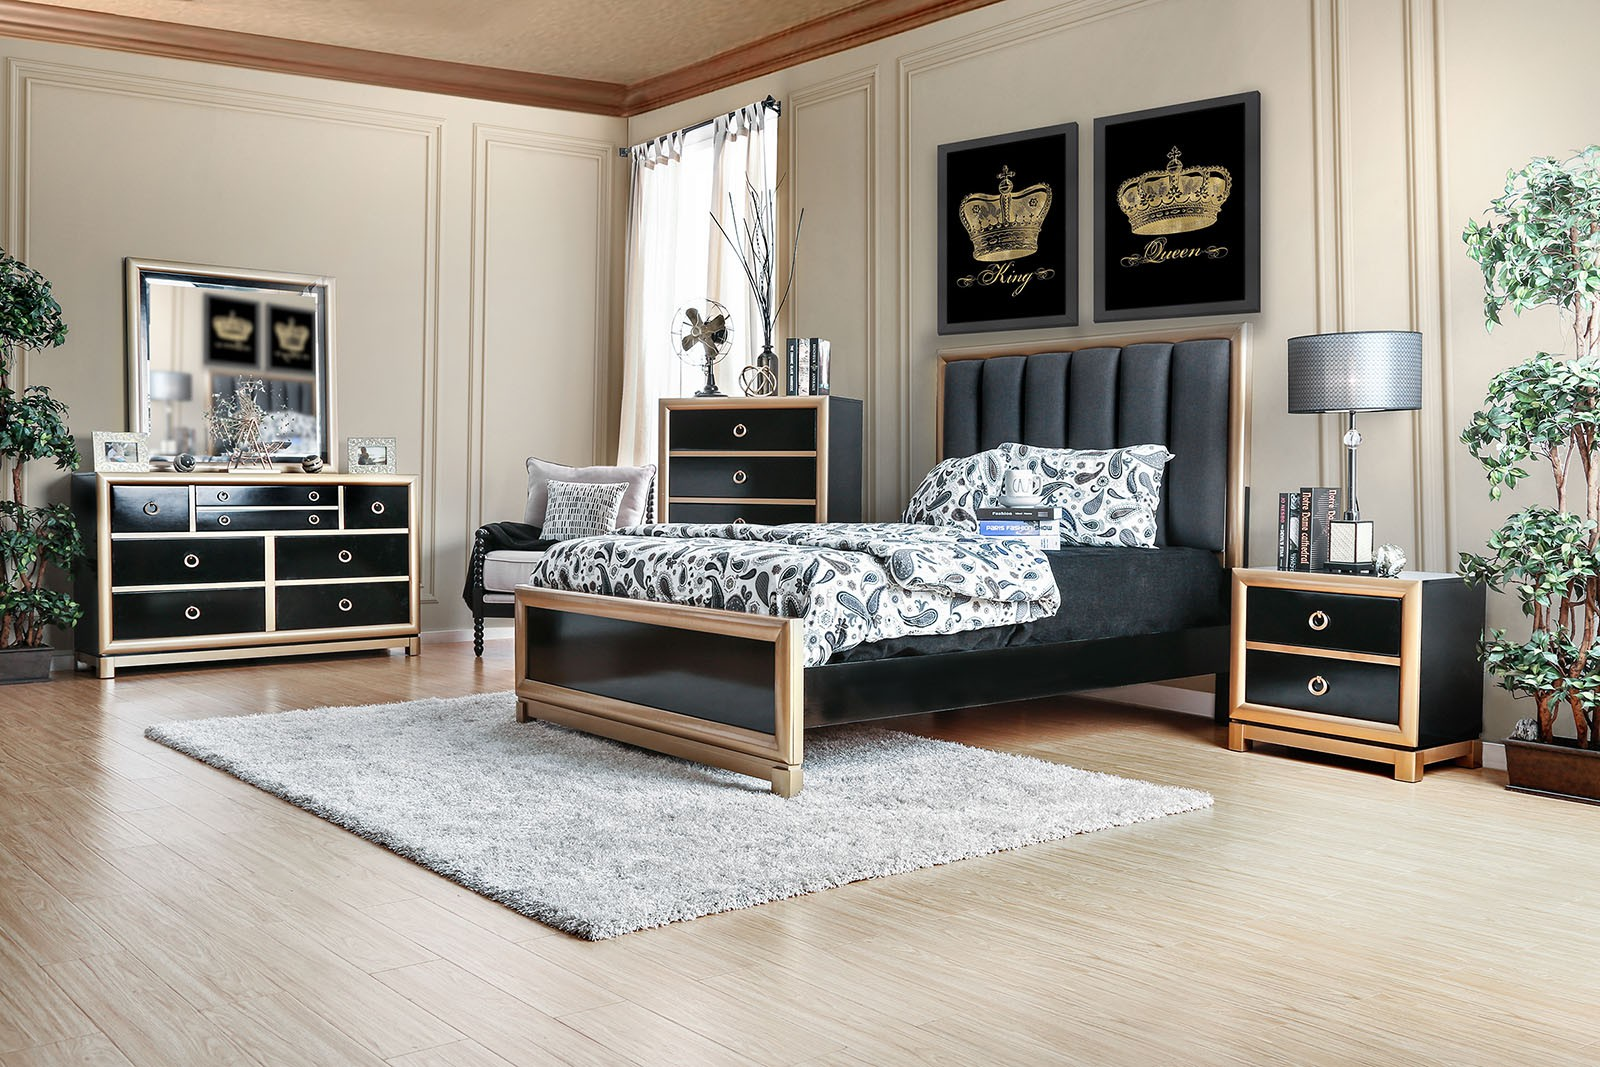 Black And Gold Color Est King Size Bed Dresser Mirror Nightstand 4pc  Bedroom Set